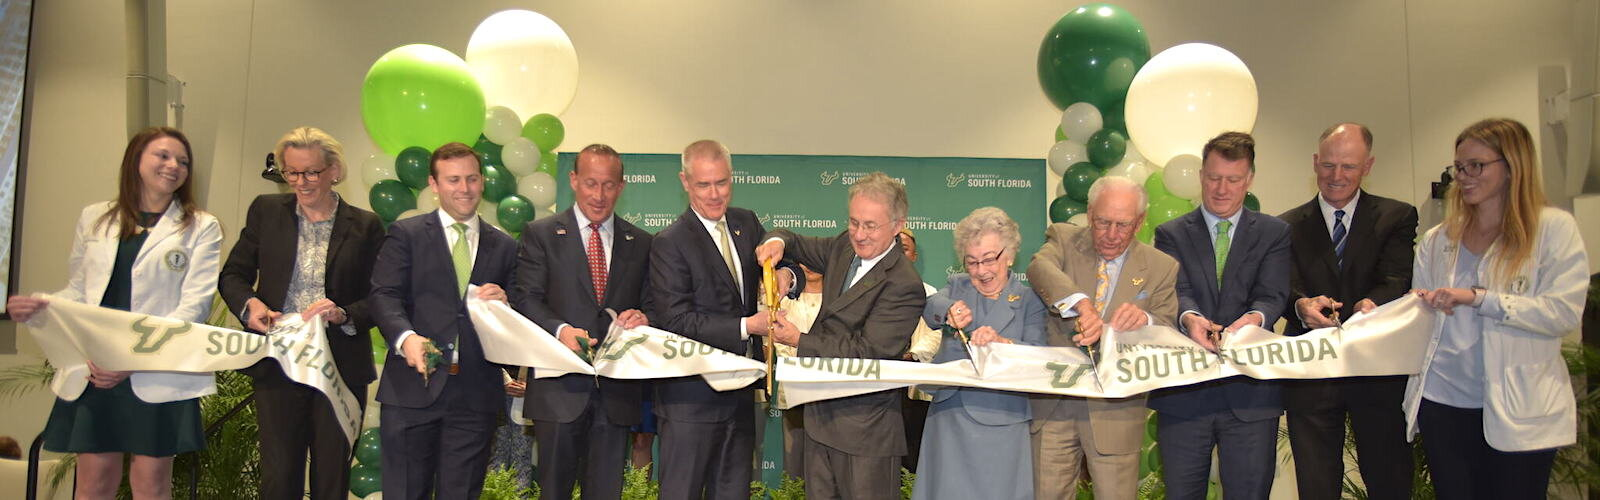 Dignitaries led by philanthropists Carol and Frank Morsani, USF Health VP Charles Lockwood, and Tampa Mayor Jane Castor cut the ribbon to the new USF Med School.